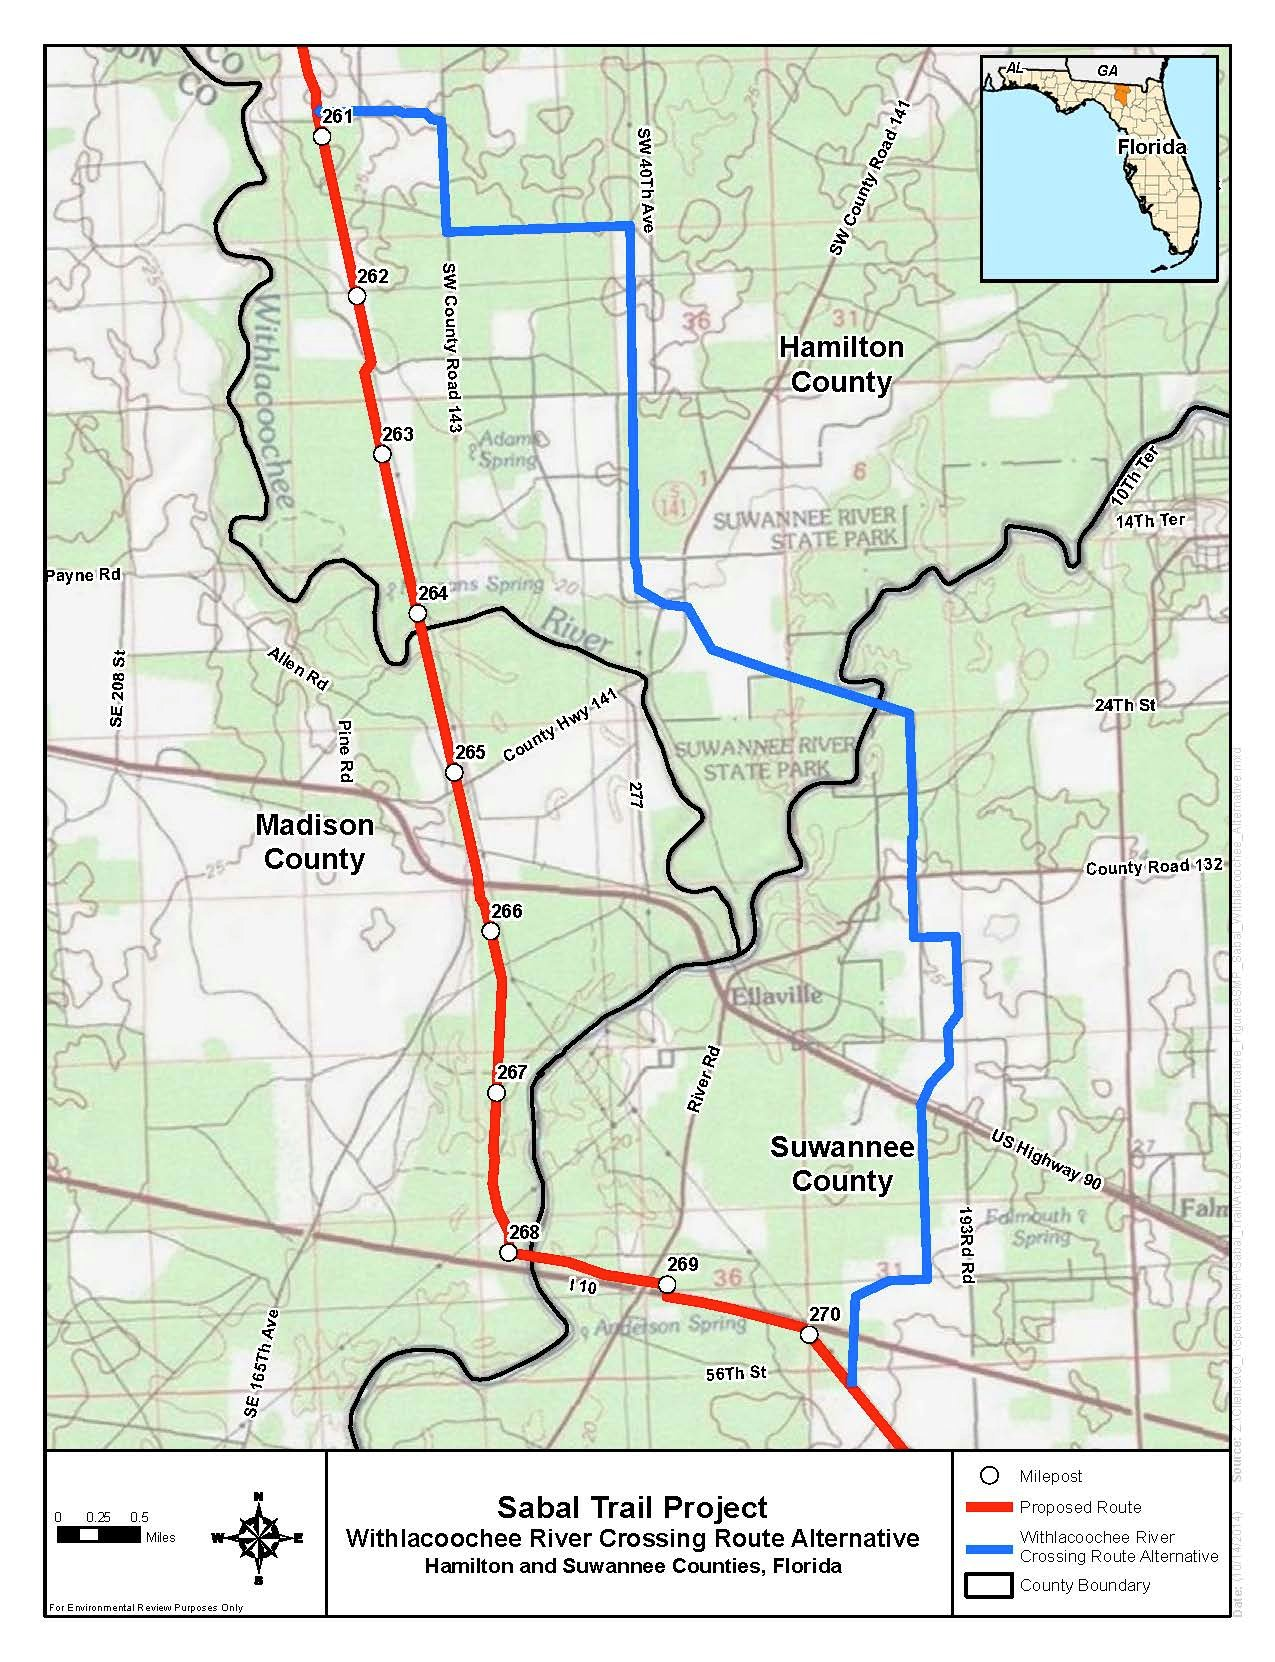 1275x1662 Withlacoochee River Crossing Route Alternative, Hamilton and Suwannee Counties, Florida, in Sabal Trail Notice of EIS Intent, by John S. Quarterman, for SpectraBusters.org, 15 October 2014